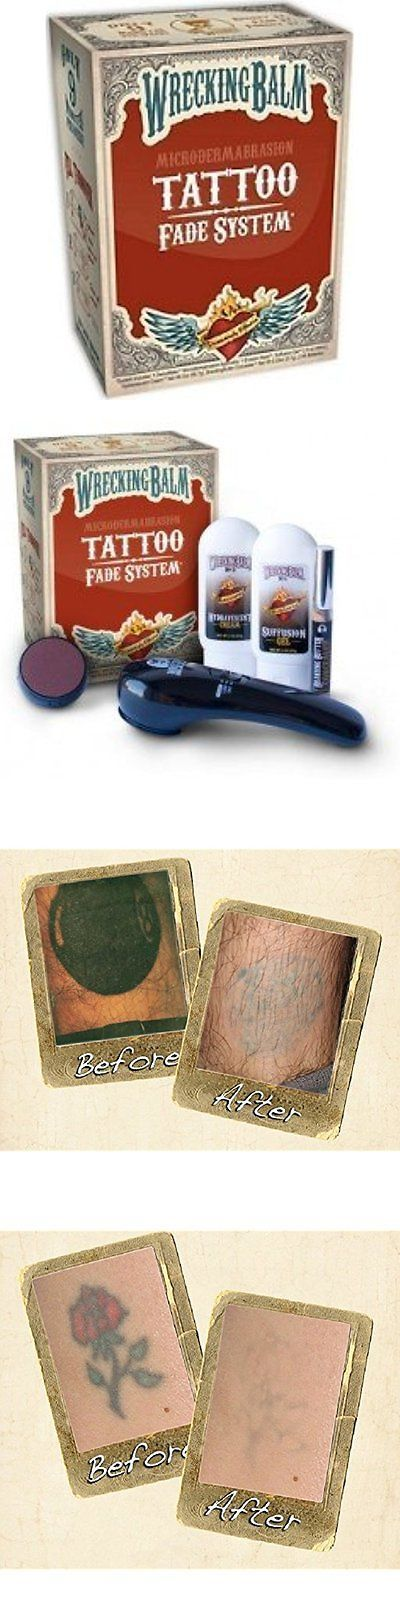 Tattoo Removal - Tattoo Removal Machines: Wrecking Aftercare Products Balm Tattoo Fade System -> BUY IT NOW ONLY: $45.49 on eBay! - Quick and Easy Natural Methods & Secrets to Eliminating the Unwanted Tattoo That You've Been Regretting for a Long Time